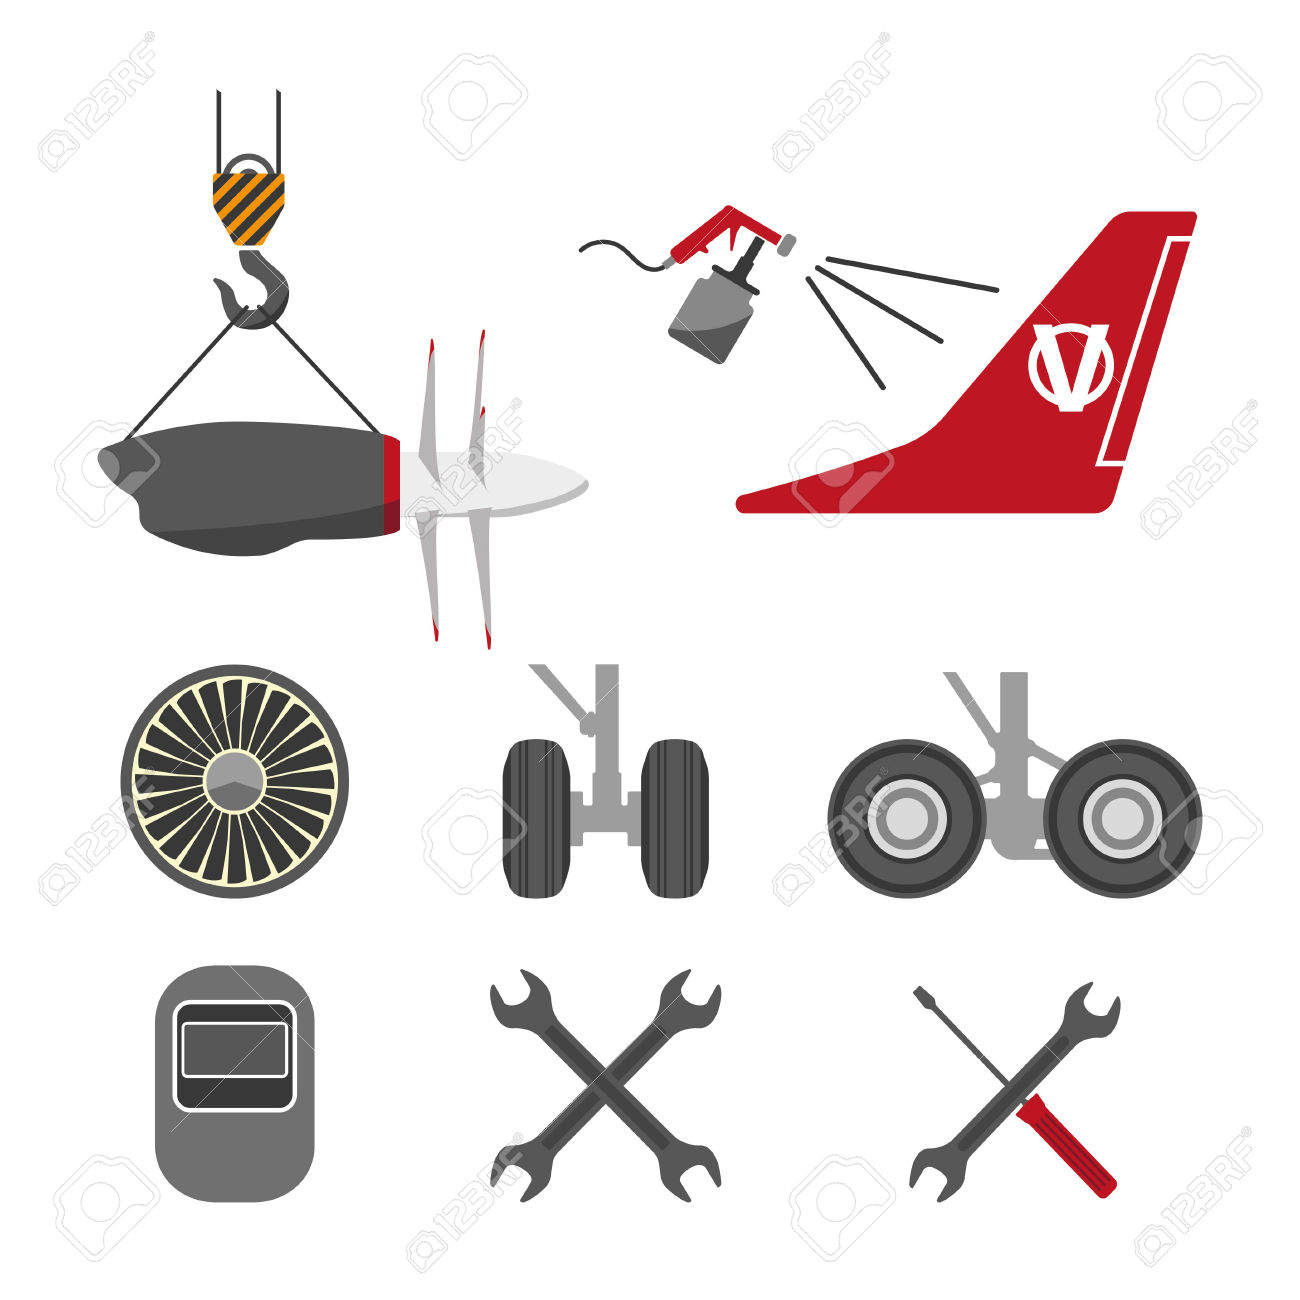 Set Of Aircraft Parts On White Background. Flat Vector Icons.